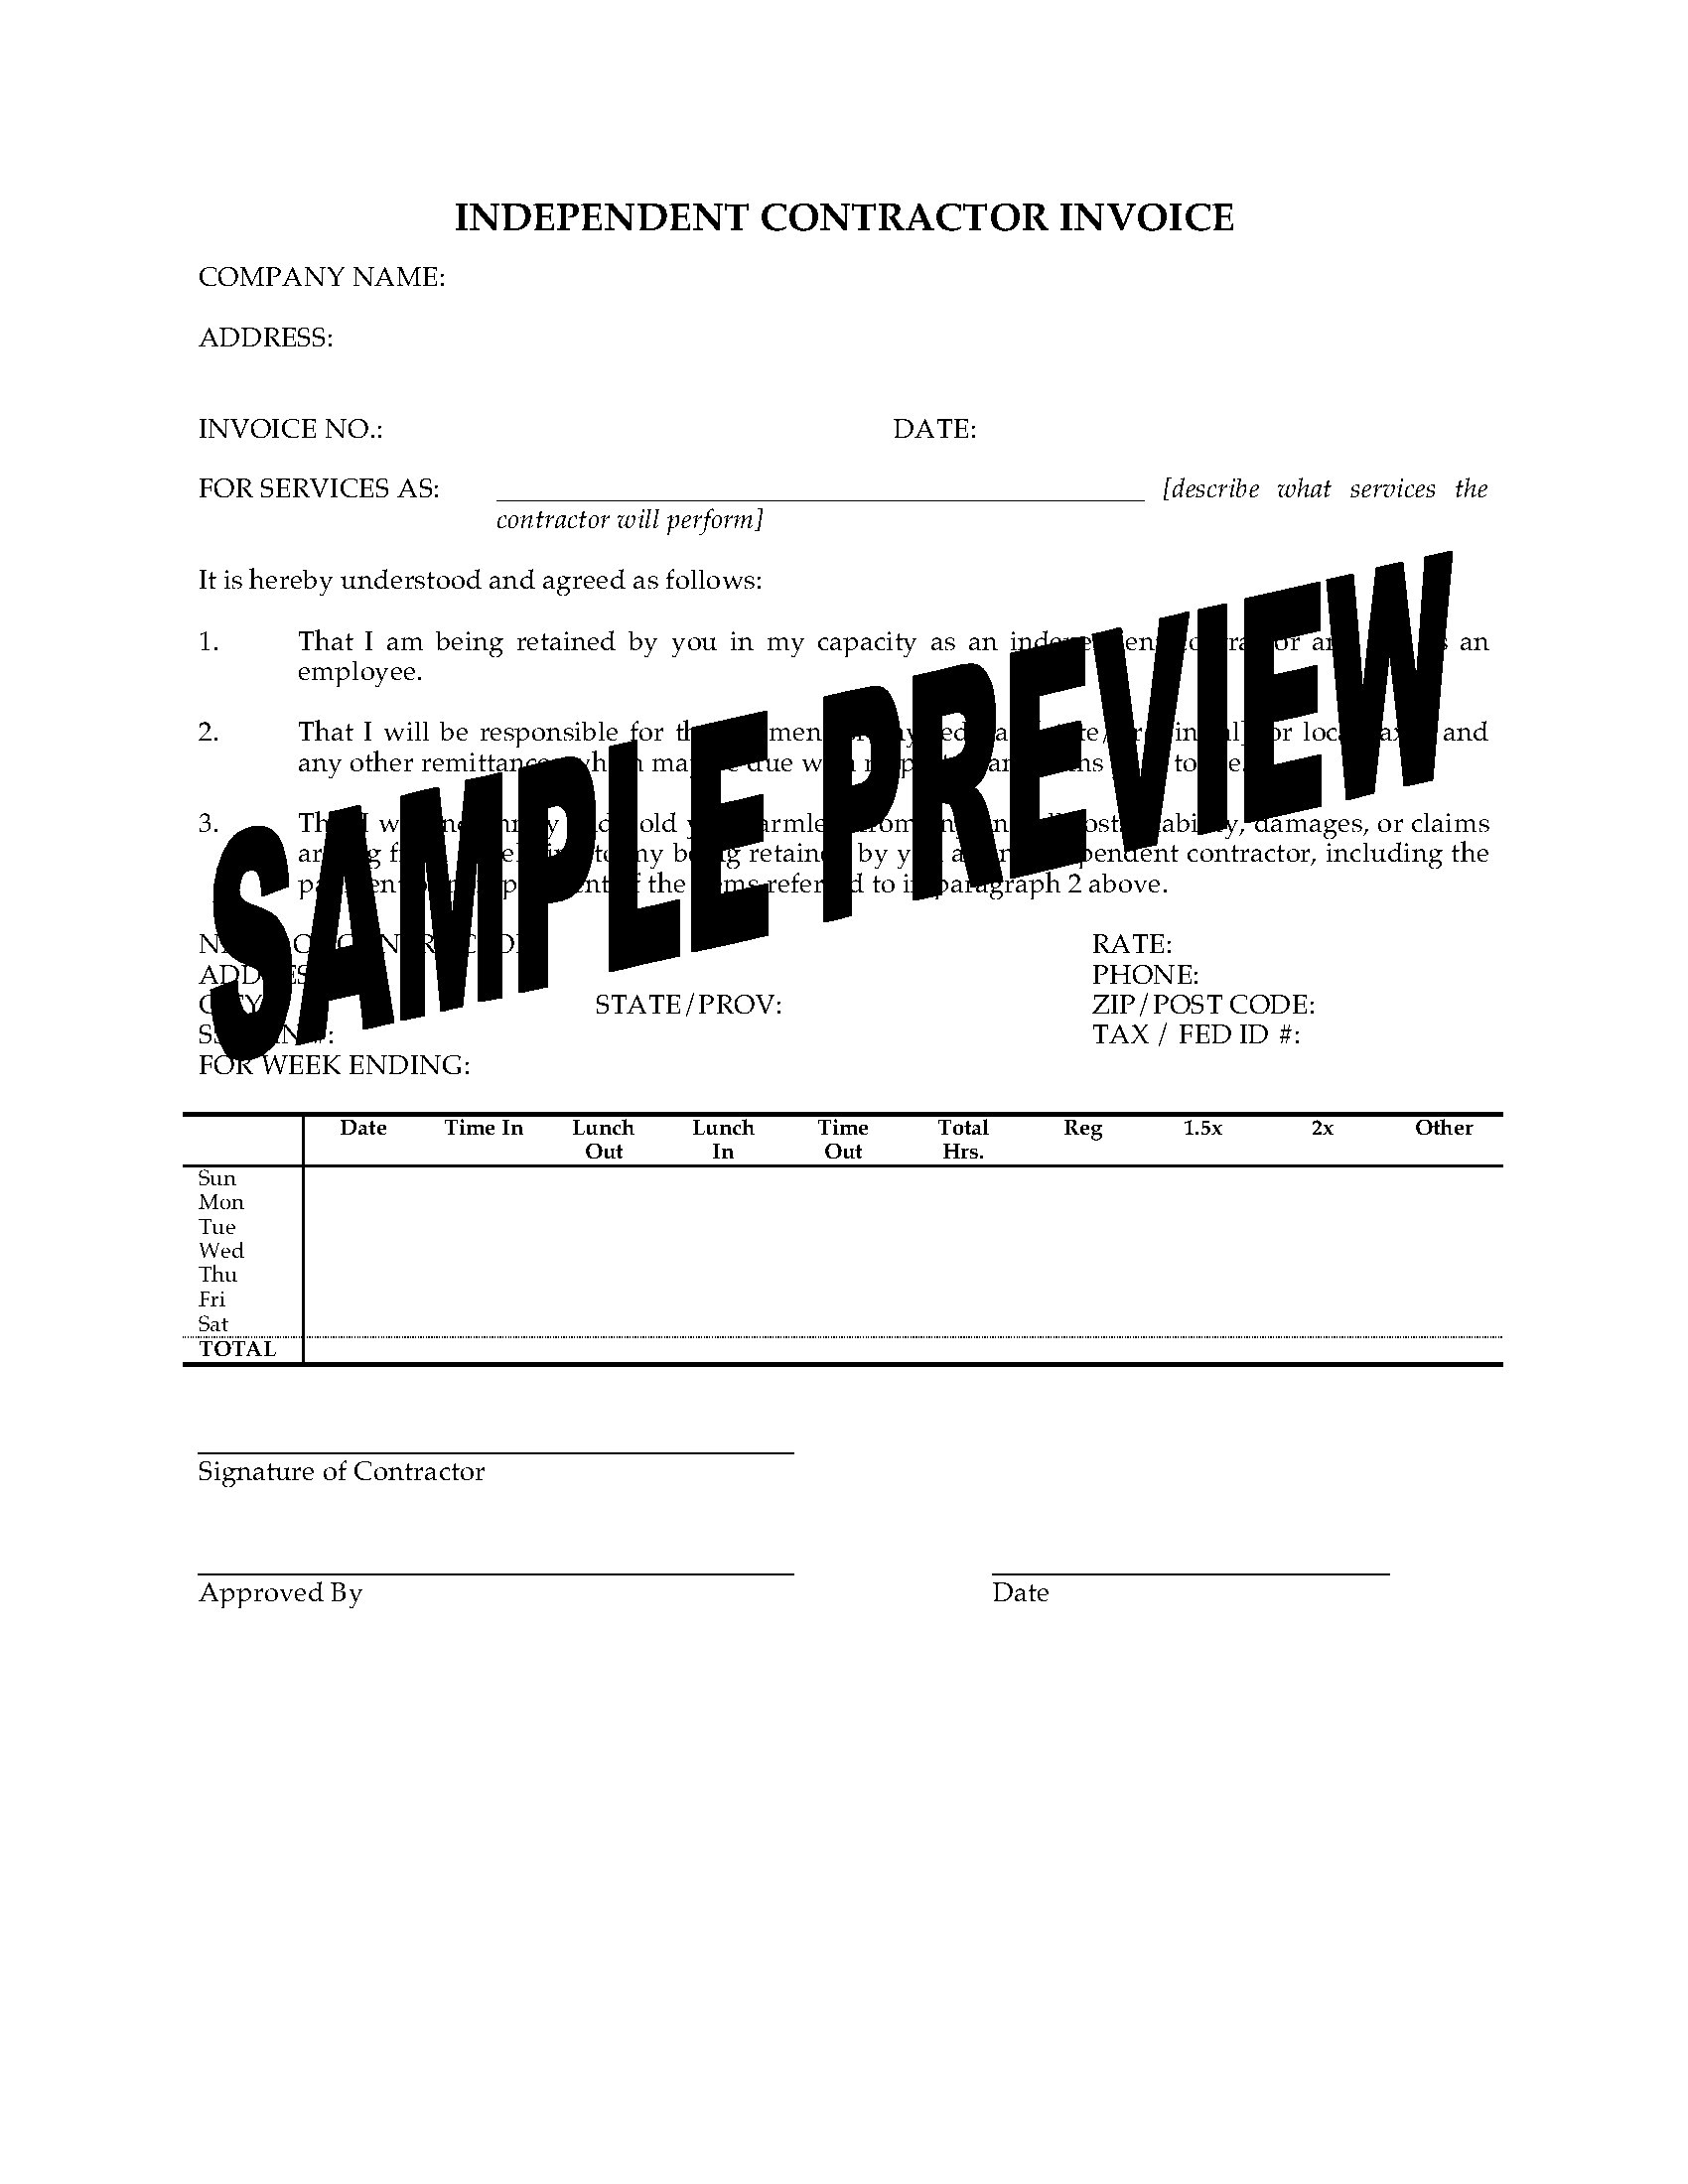 Independent Contractor Invoice Form Legal Forms And Business